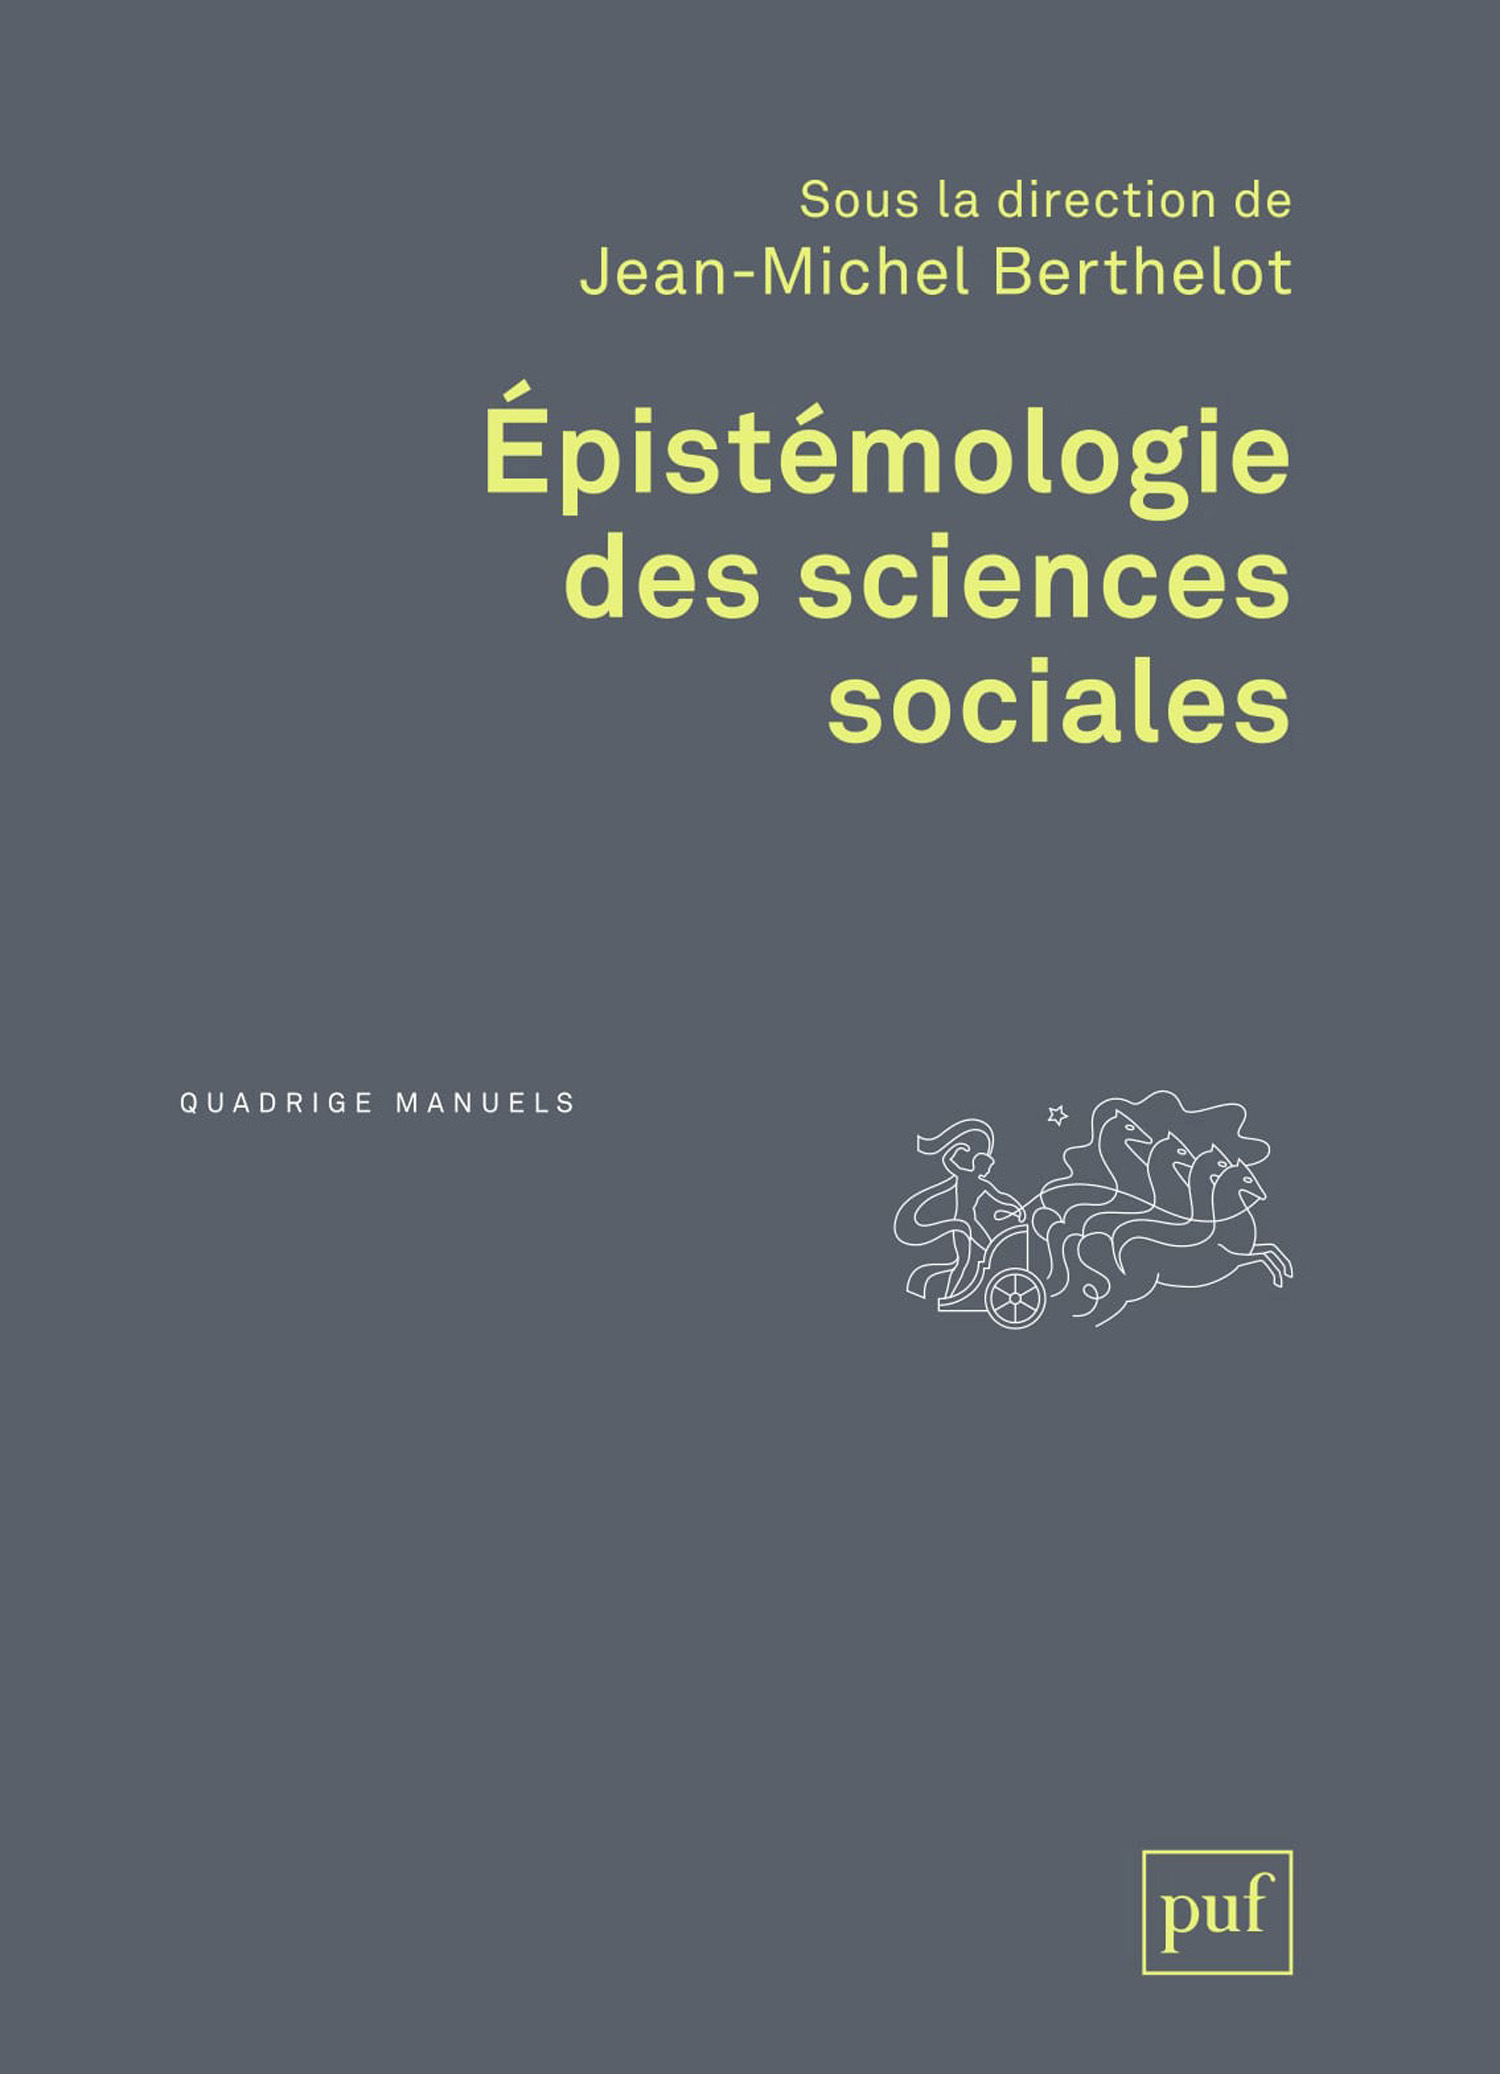 Épistémologie des sciences sociales De Jean-Michel Berthelot - Presses Universitaires de France